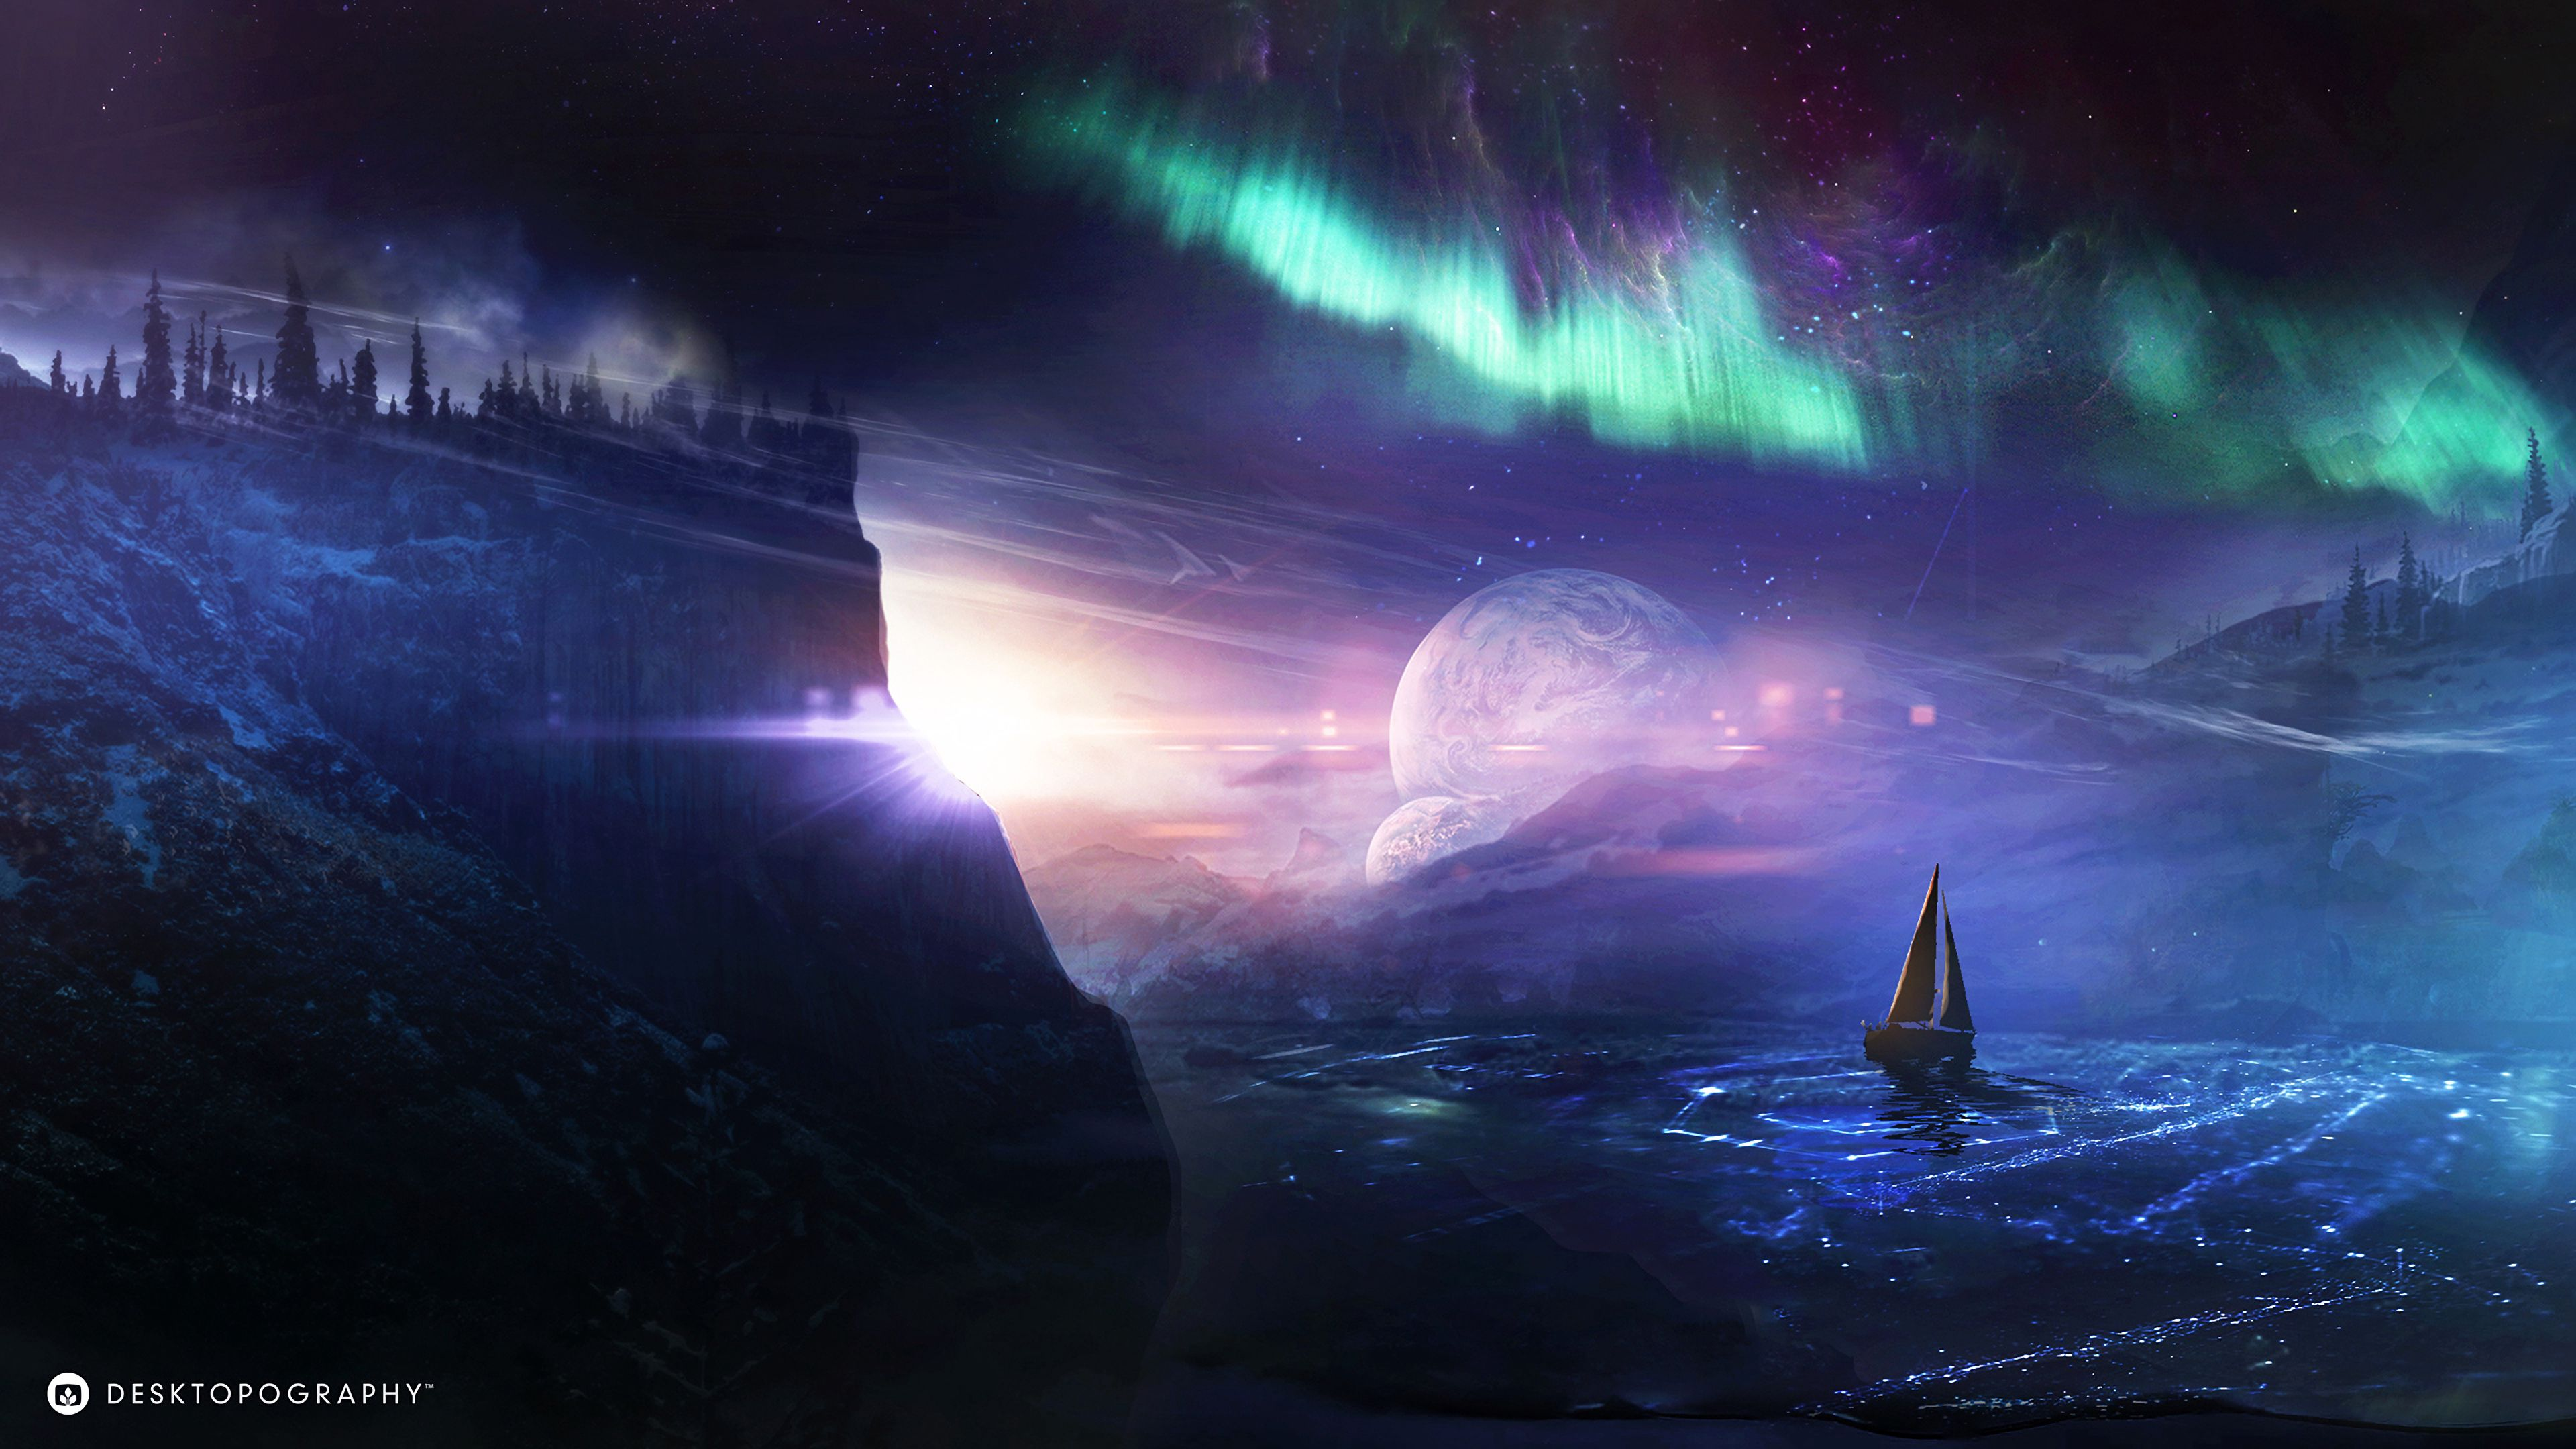 119902 download wallpaper Night, Art, Boat, Planet, Northern Lights, Aurora Borealis screensavers and pictures for free